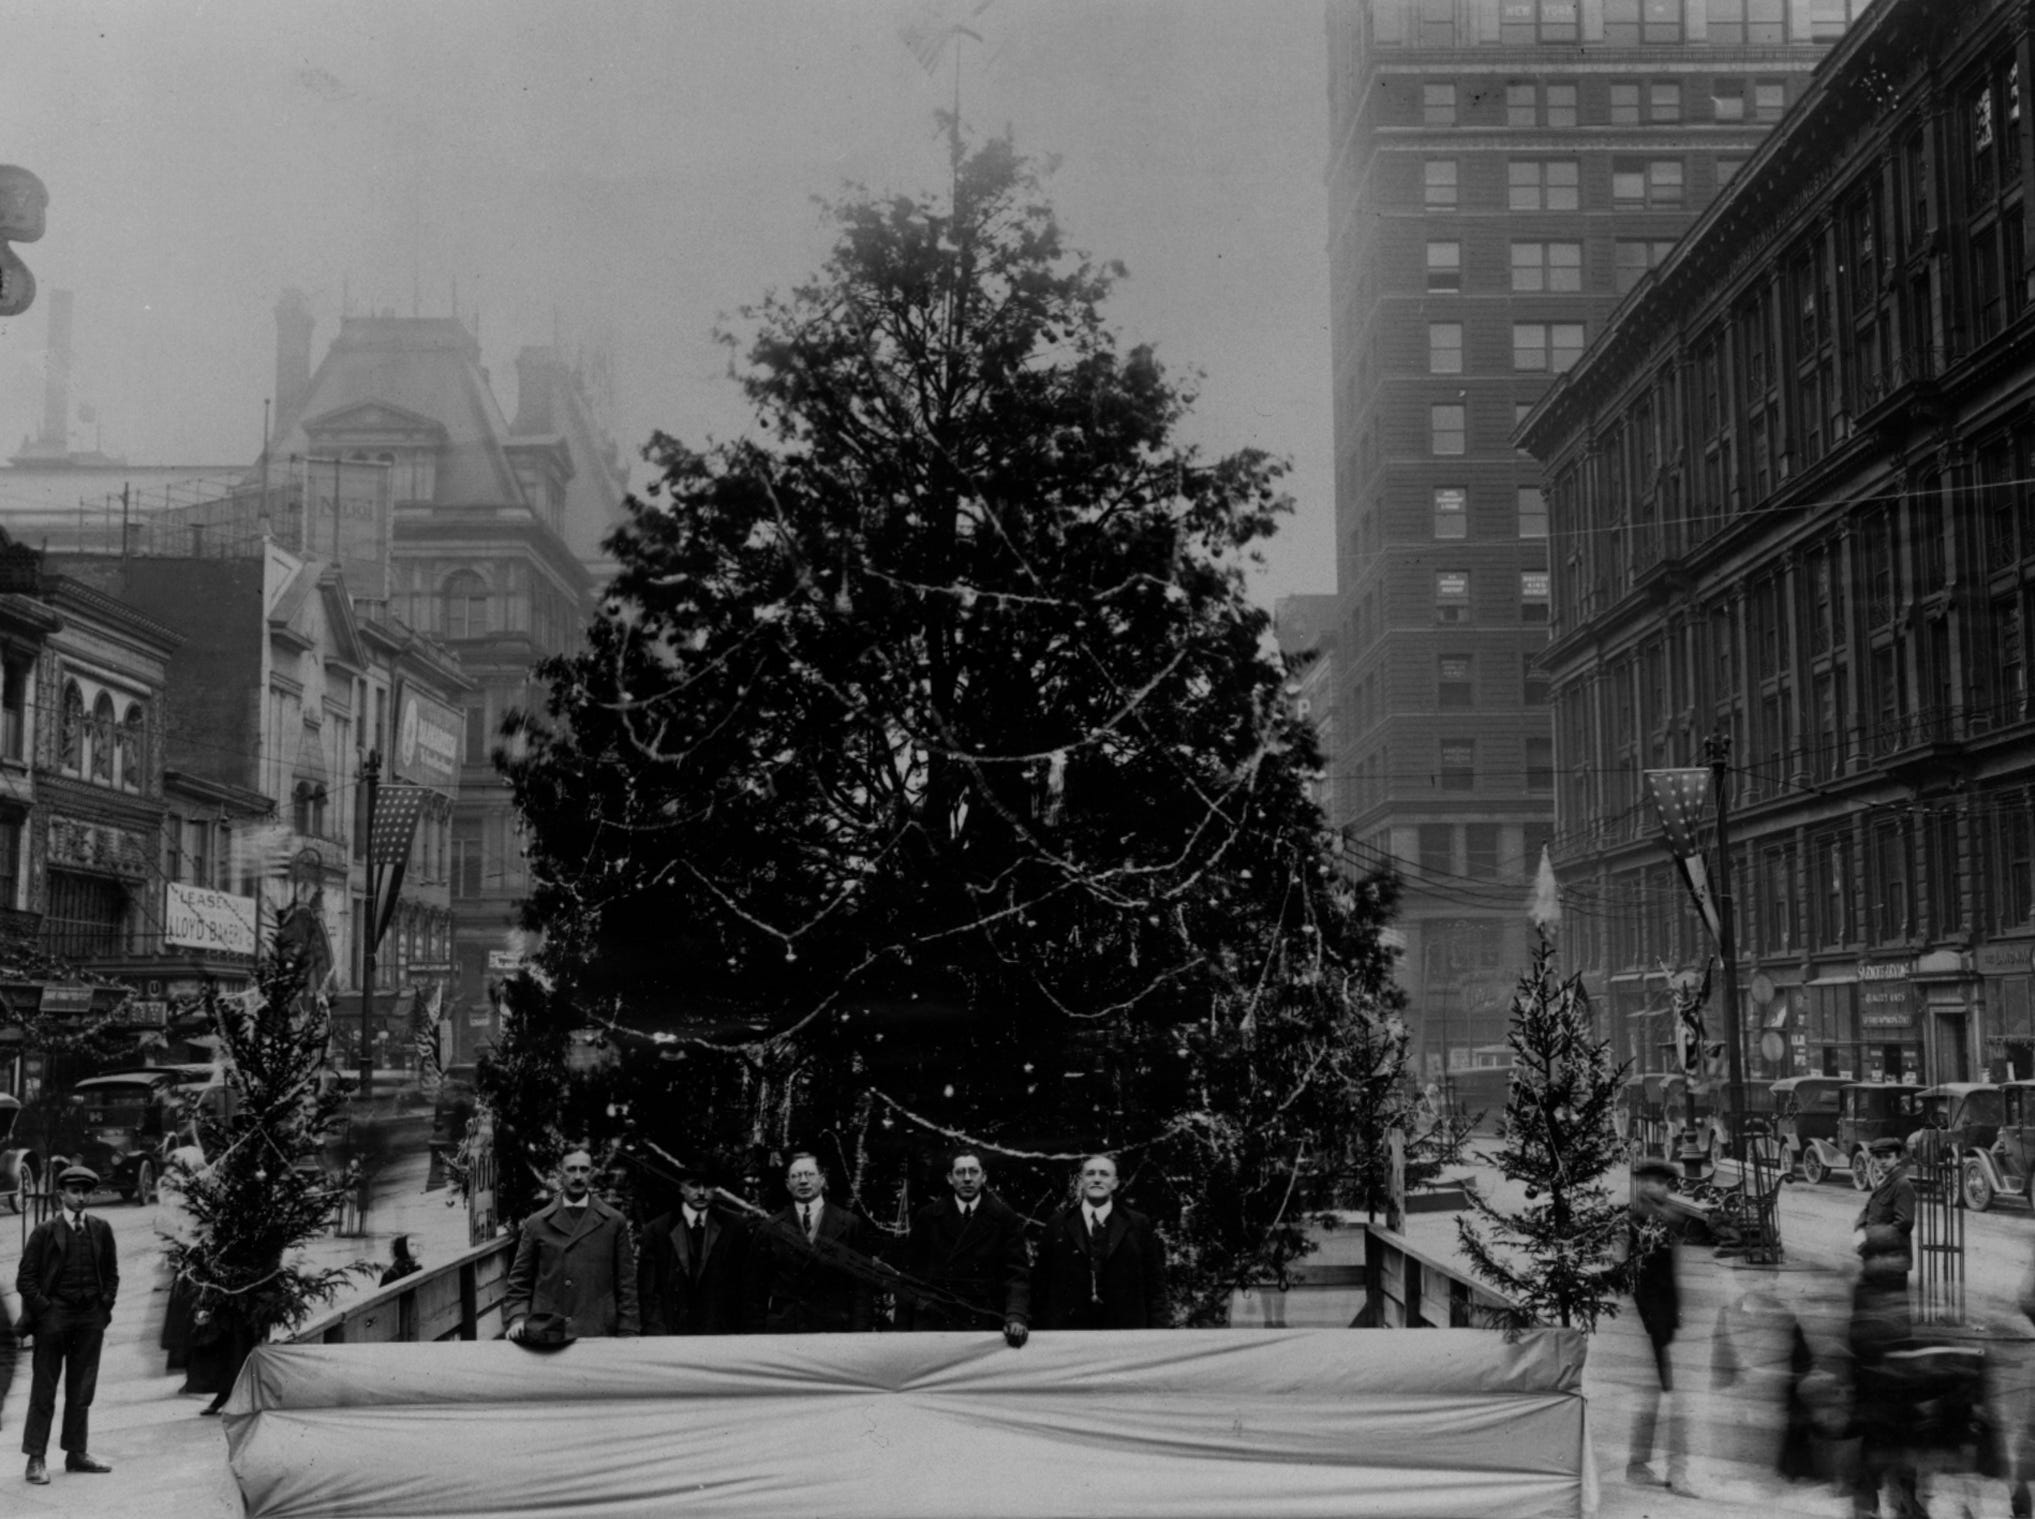 1918: The first municipal Christmas tree appeared on Fountain Square in 1918. City officials gather for the lighting.